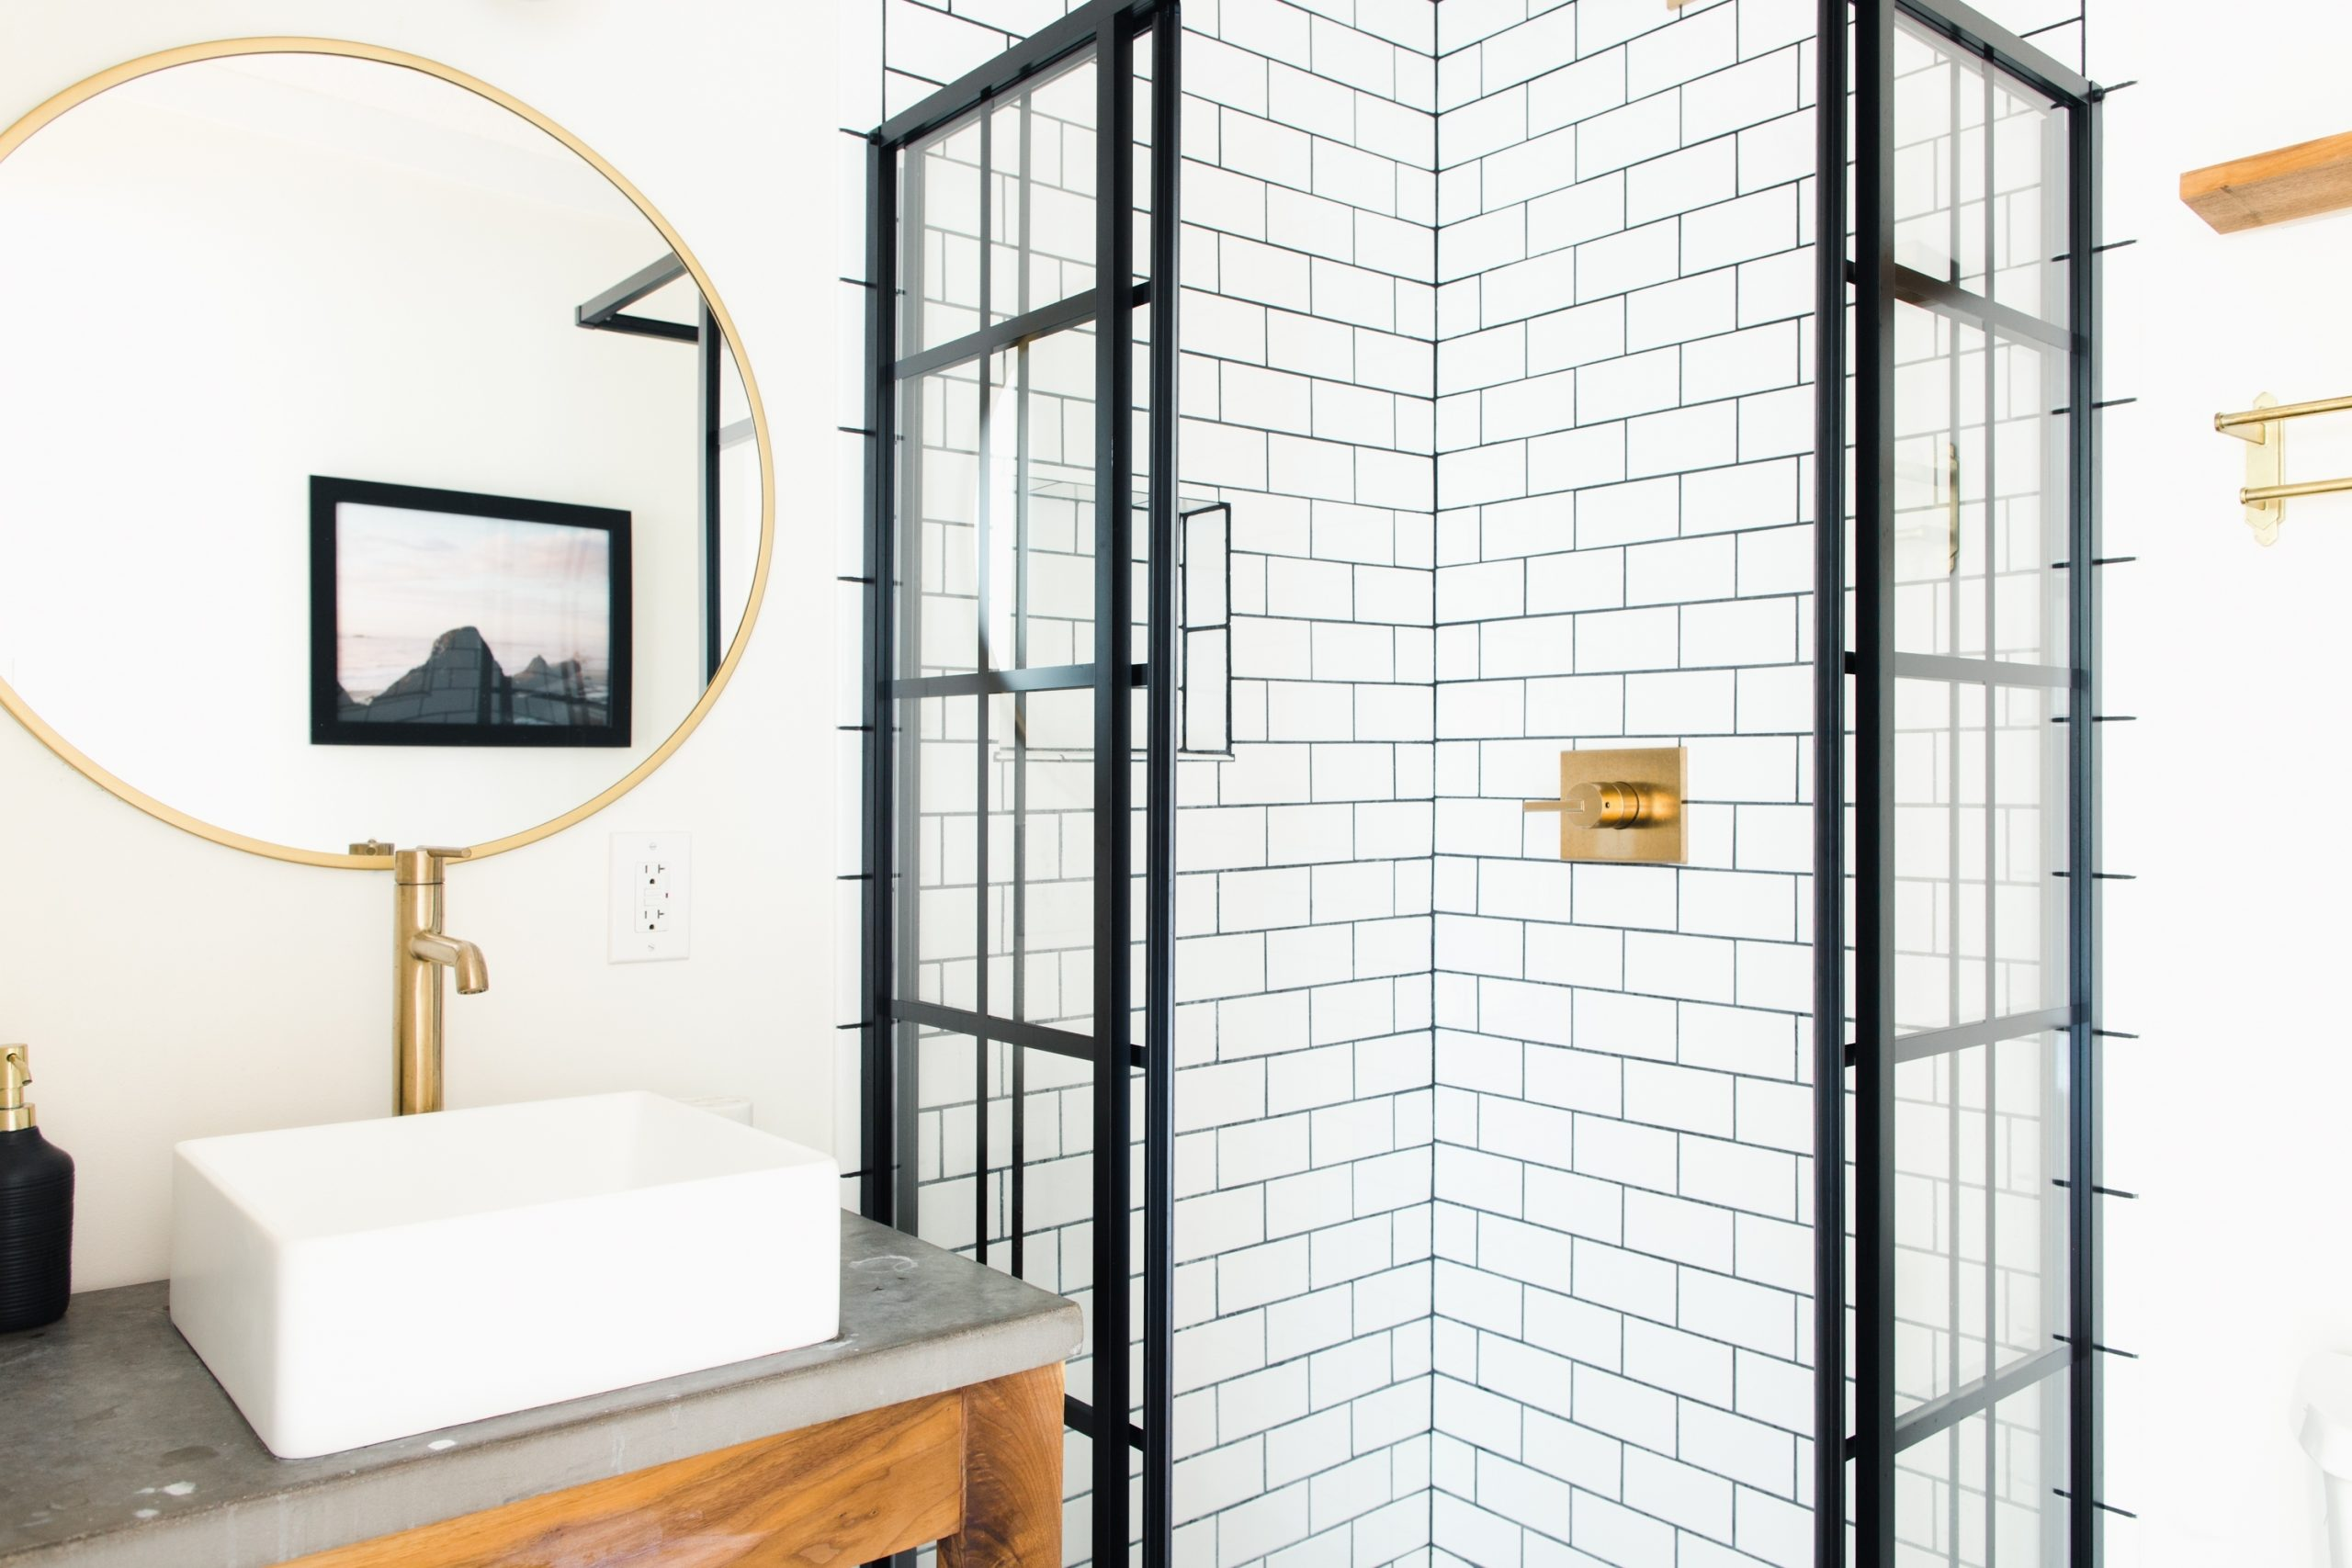 The Best Ways To Brighten Up A Window Free Bathroom 10+ Windowless Bathroom Design Inspirations